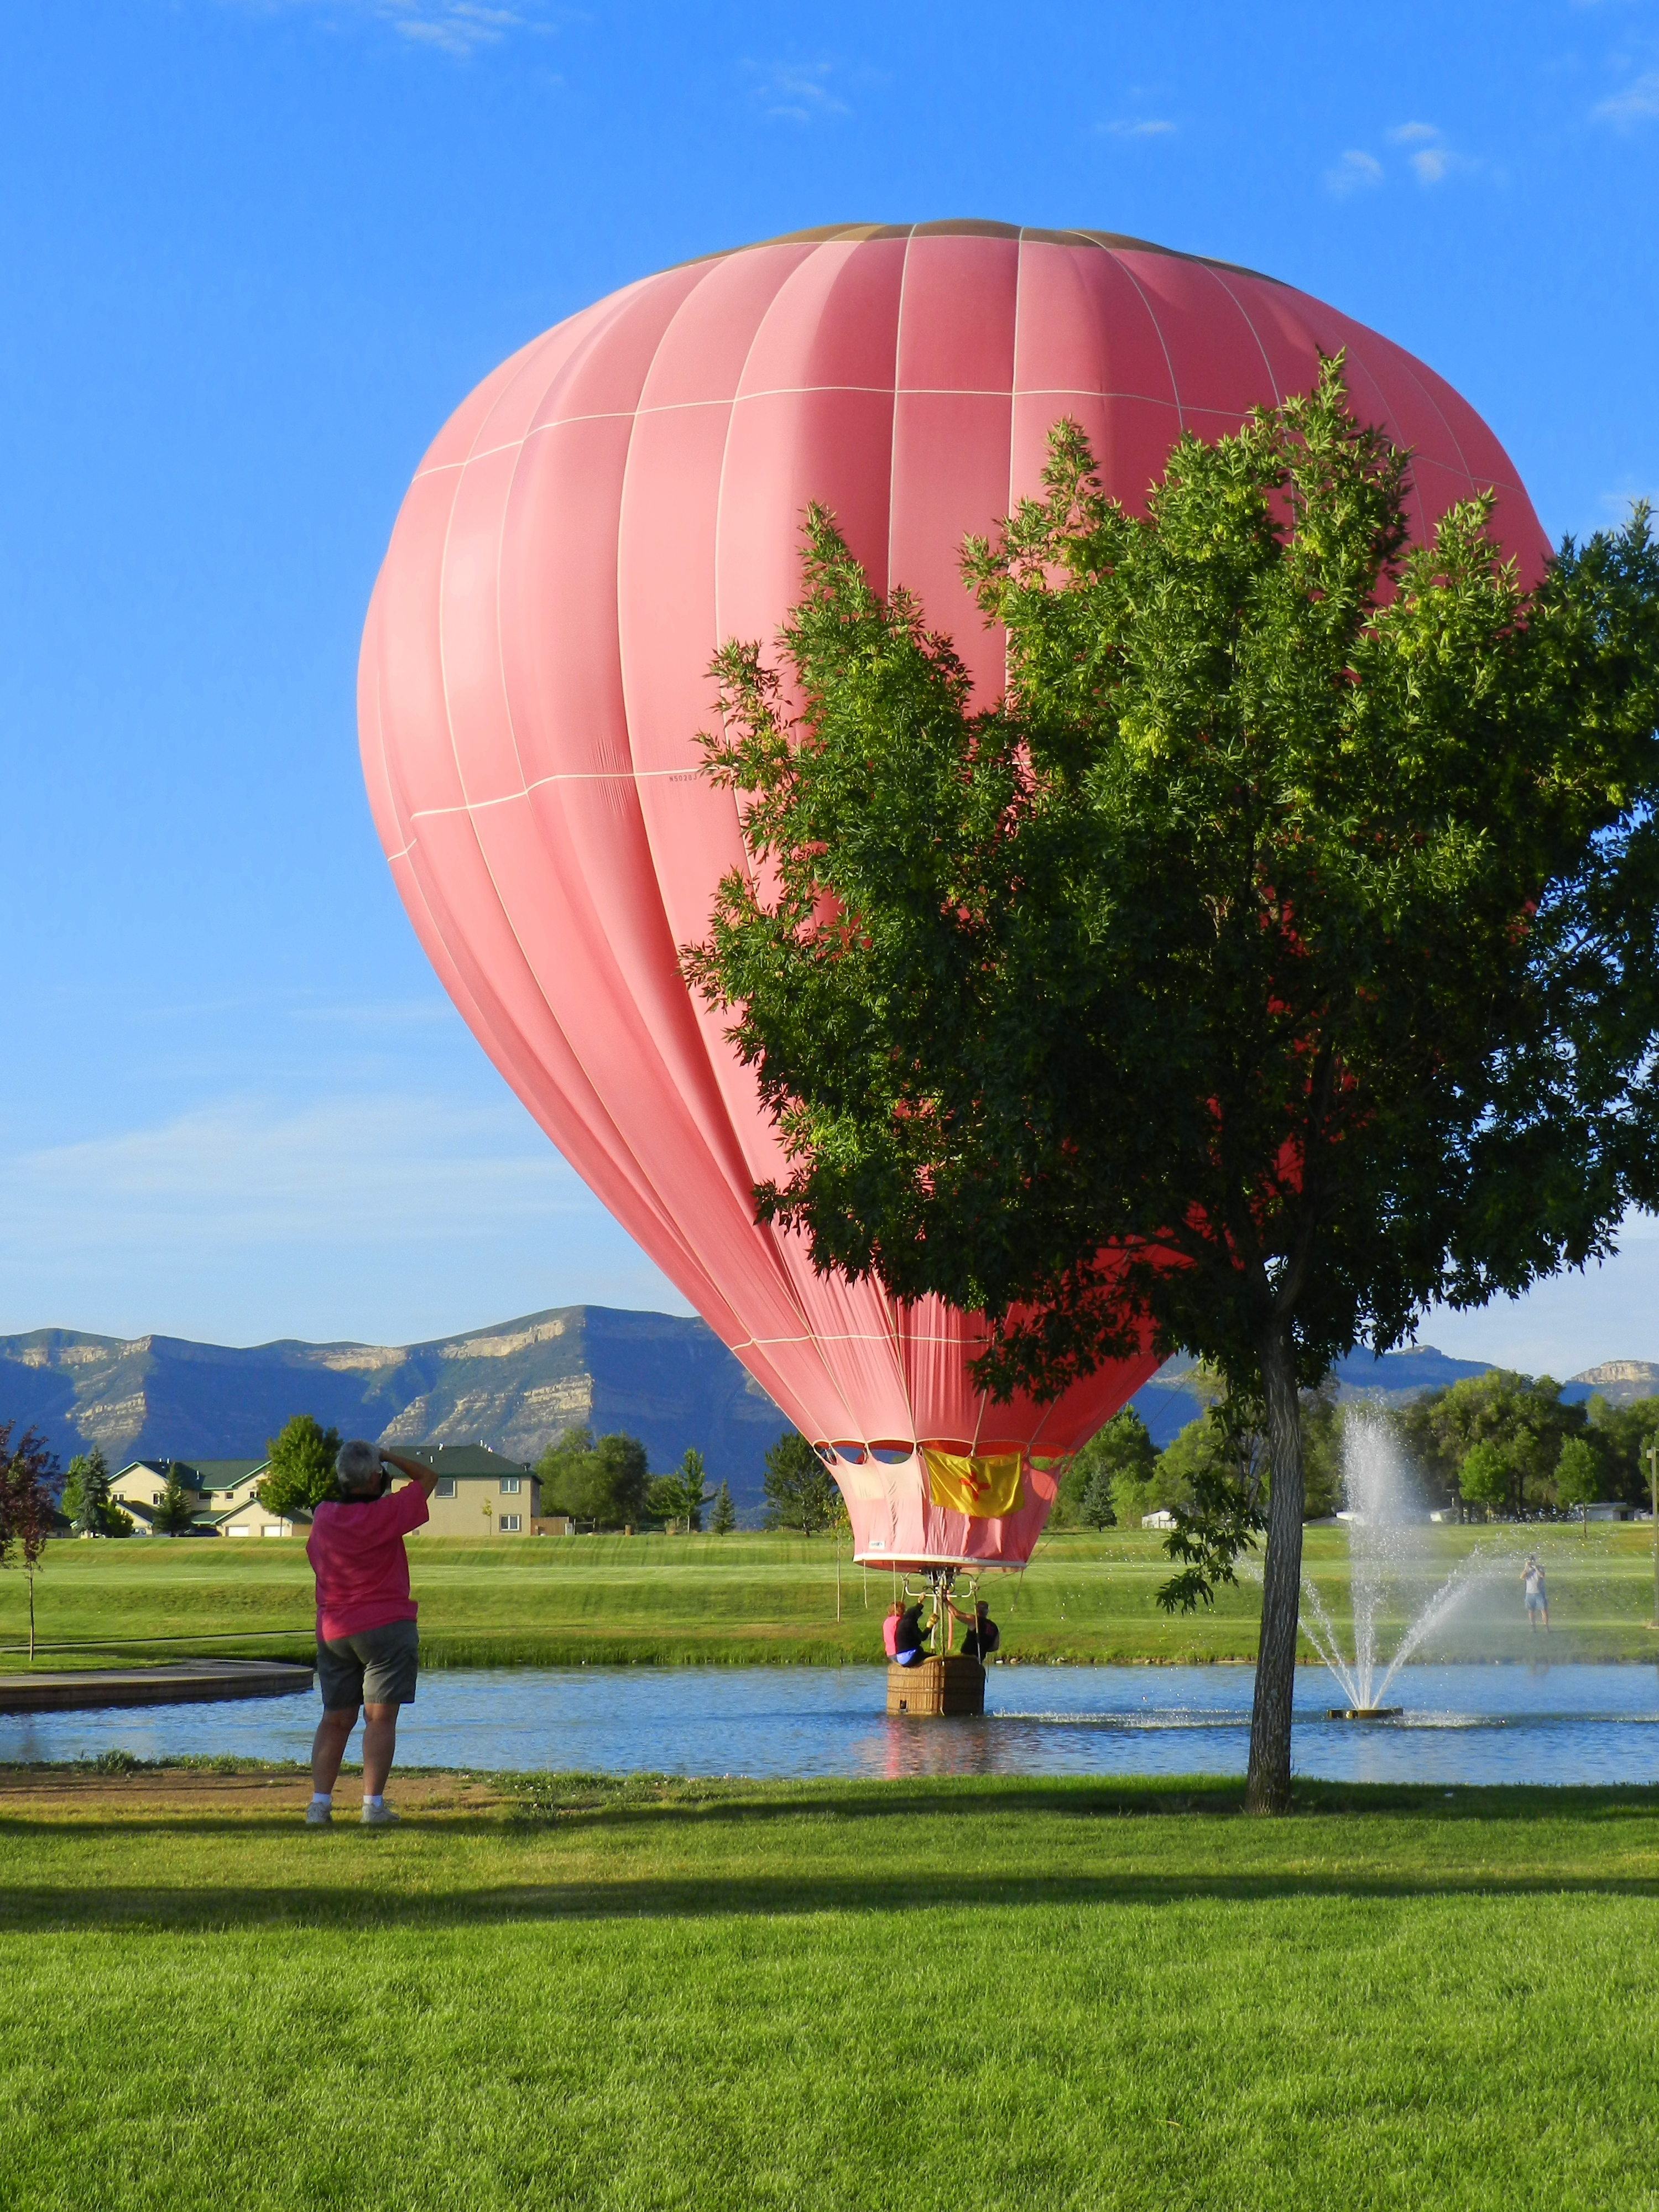 Hot Air Balloon in Parque de Vida